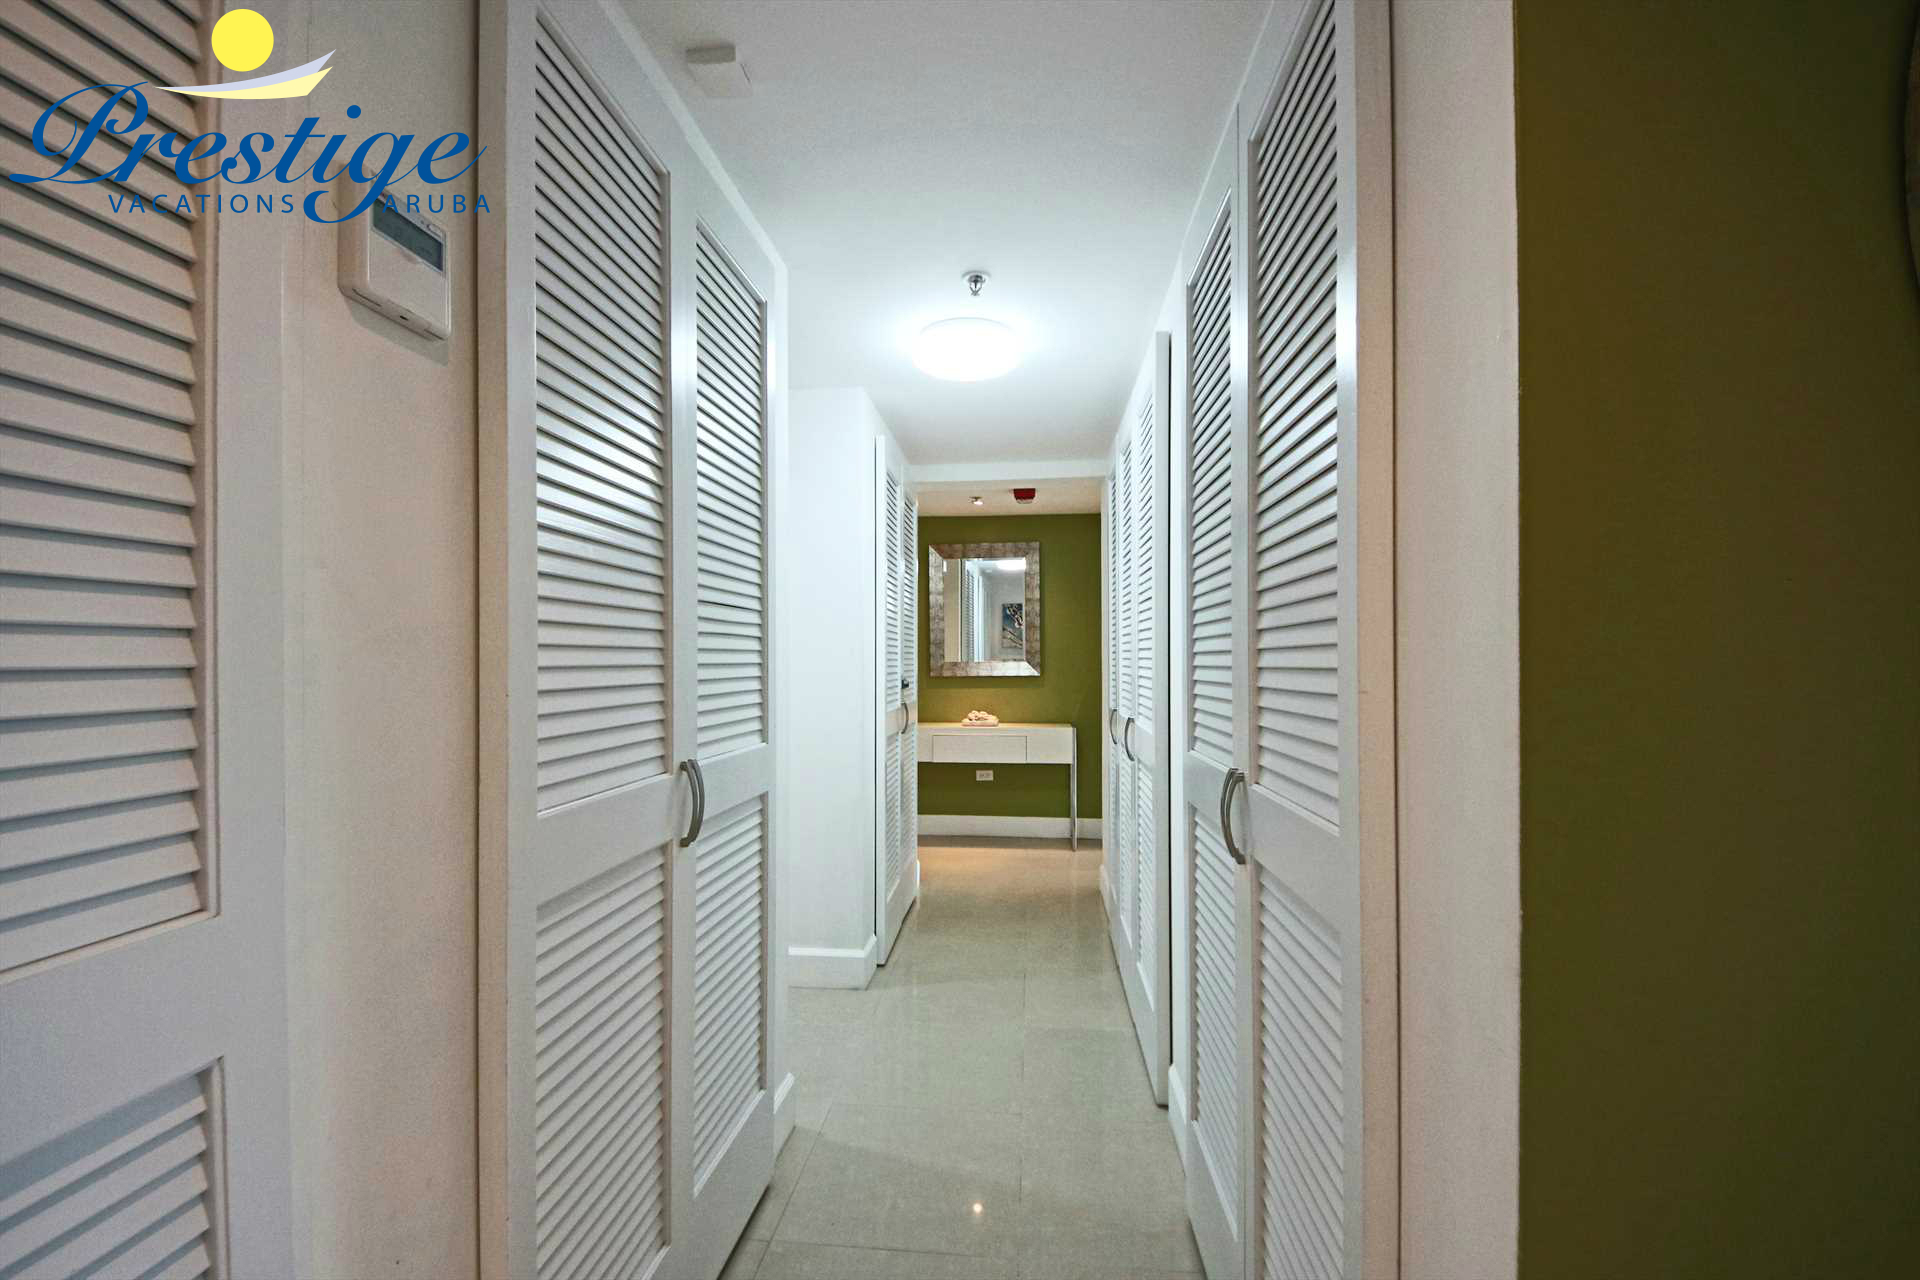 The corridor that lends access to the bedrooms, third bathroom plus the laundry facilities